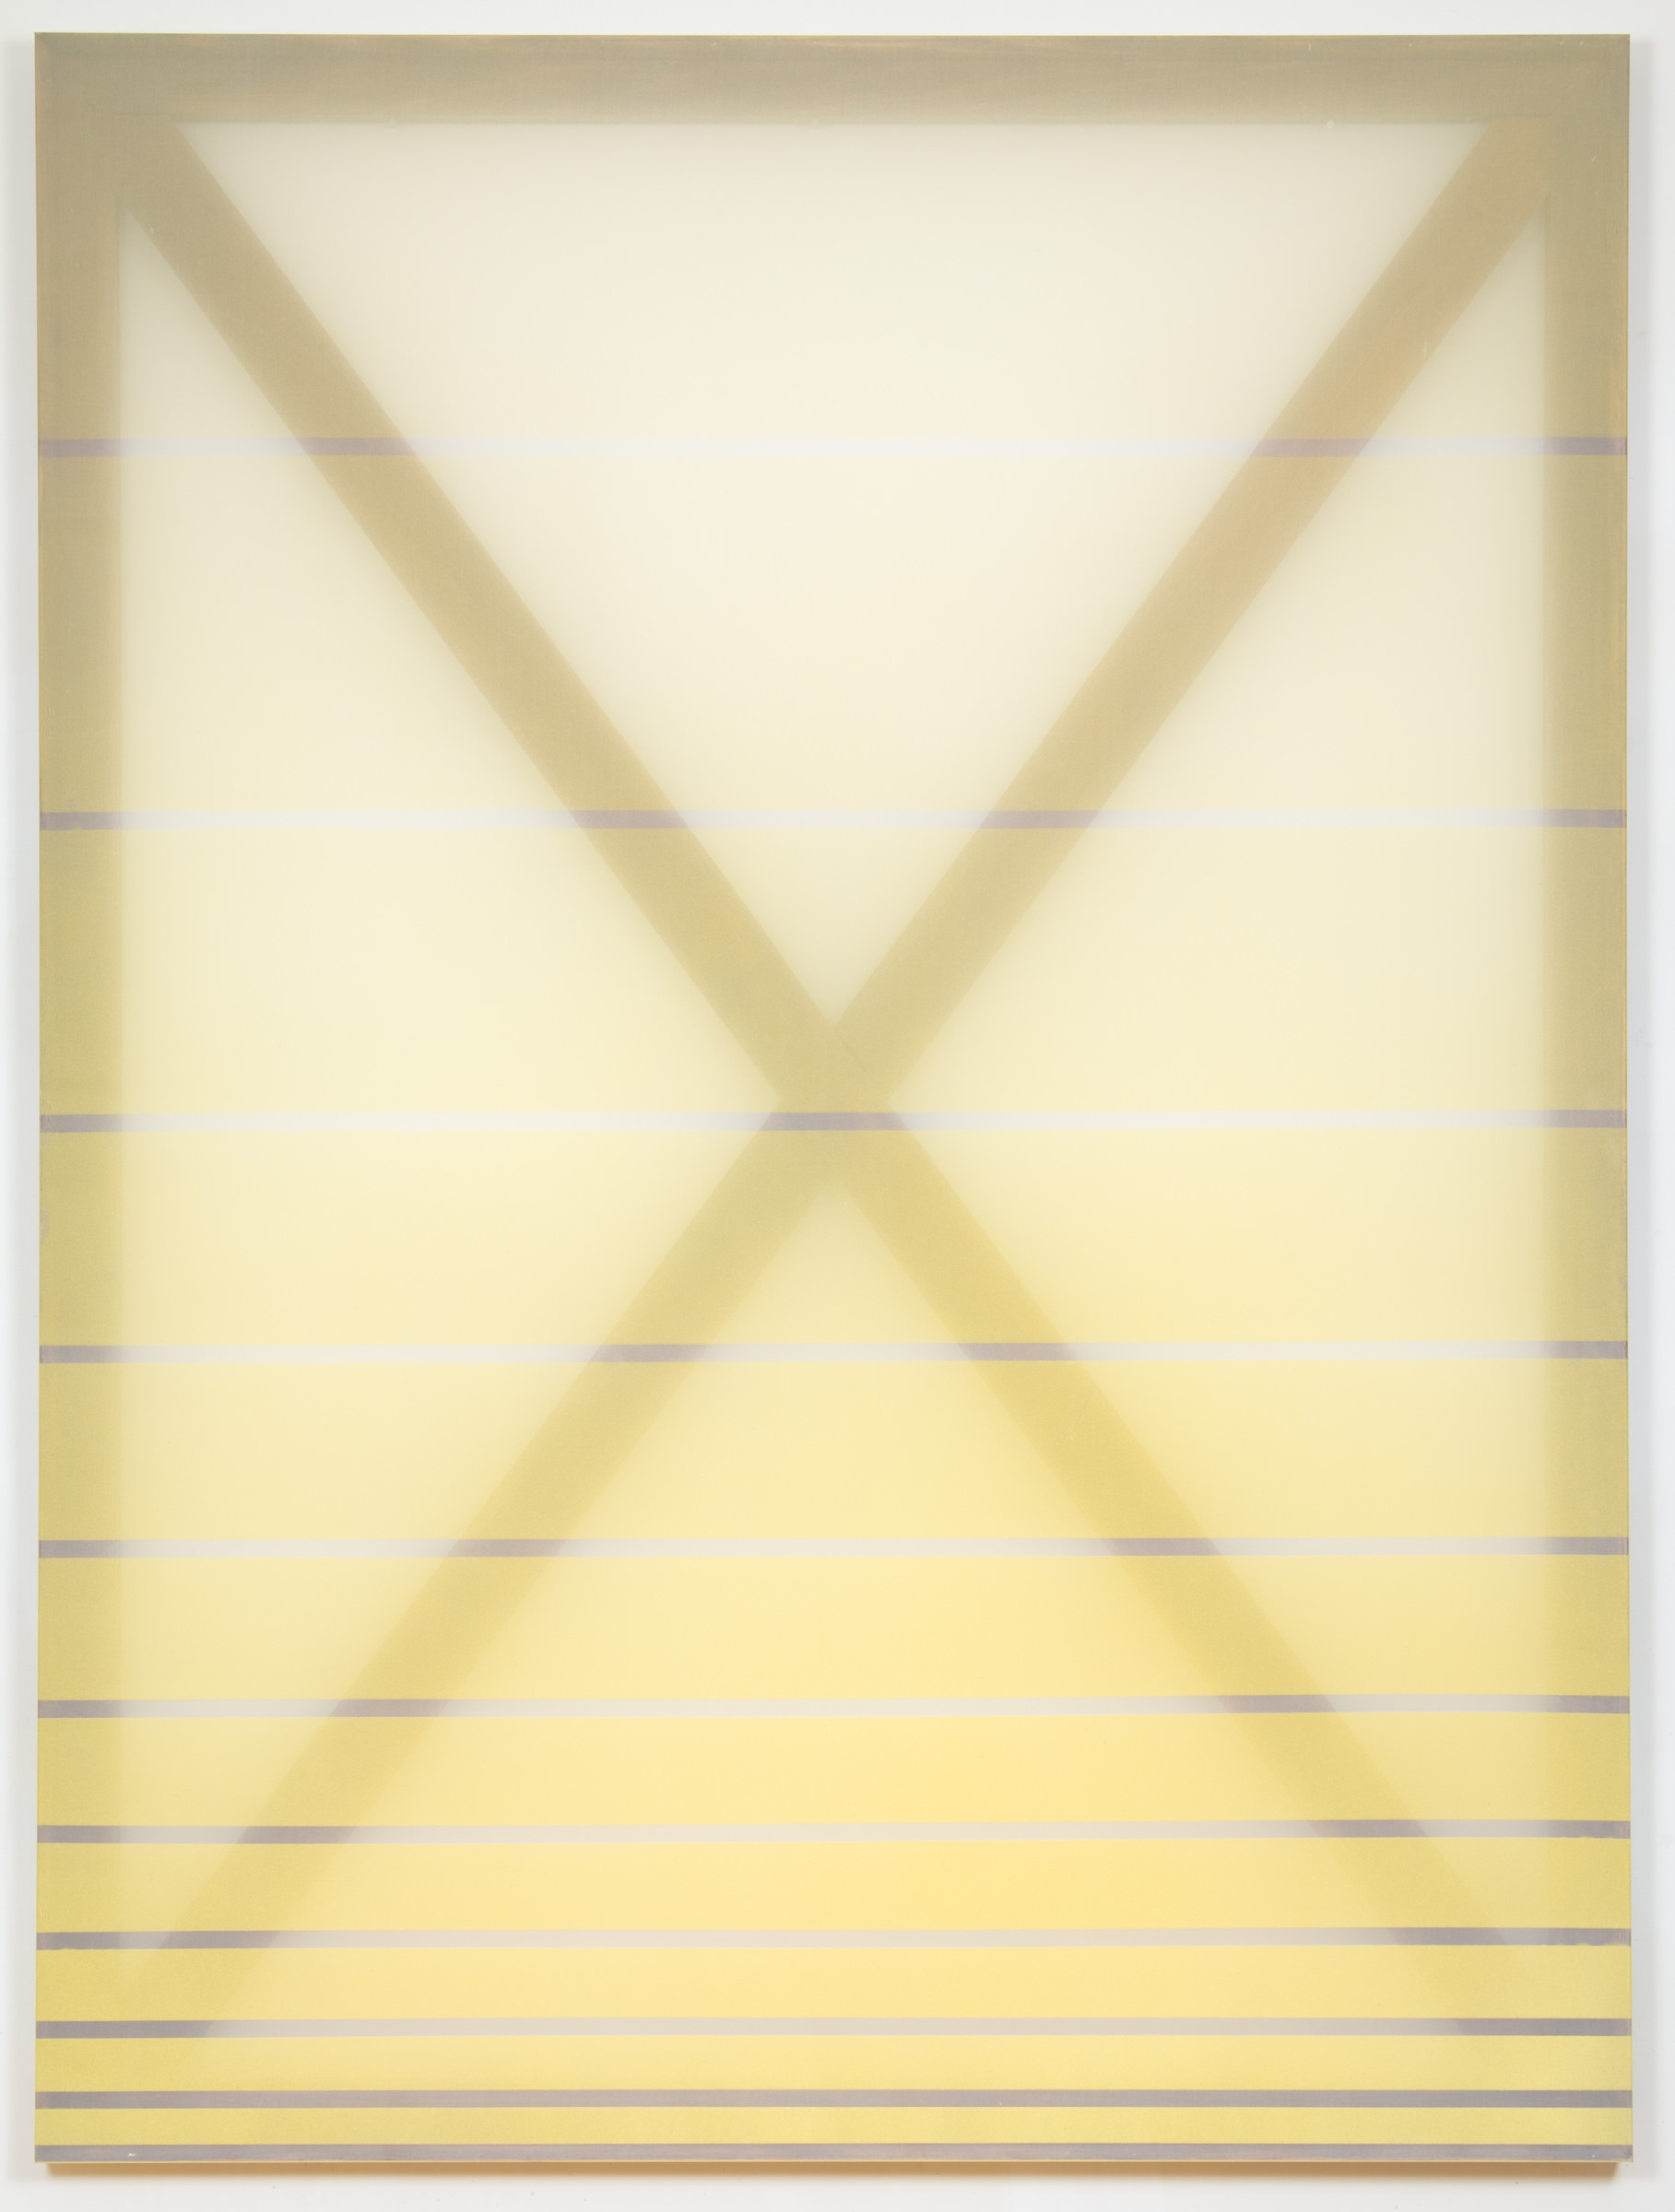 12) Rebecca Ward, X (yellow), 2015, oil on silk organza, 60 x 45 in